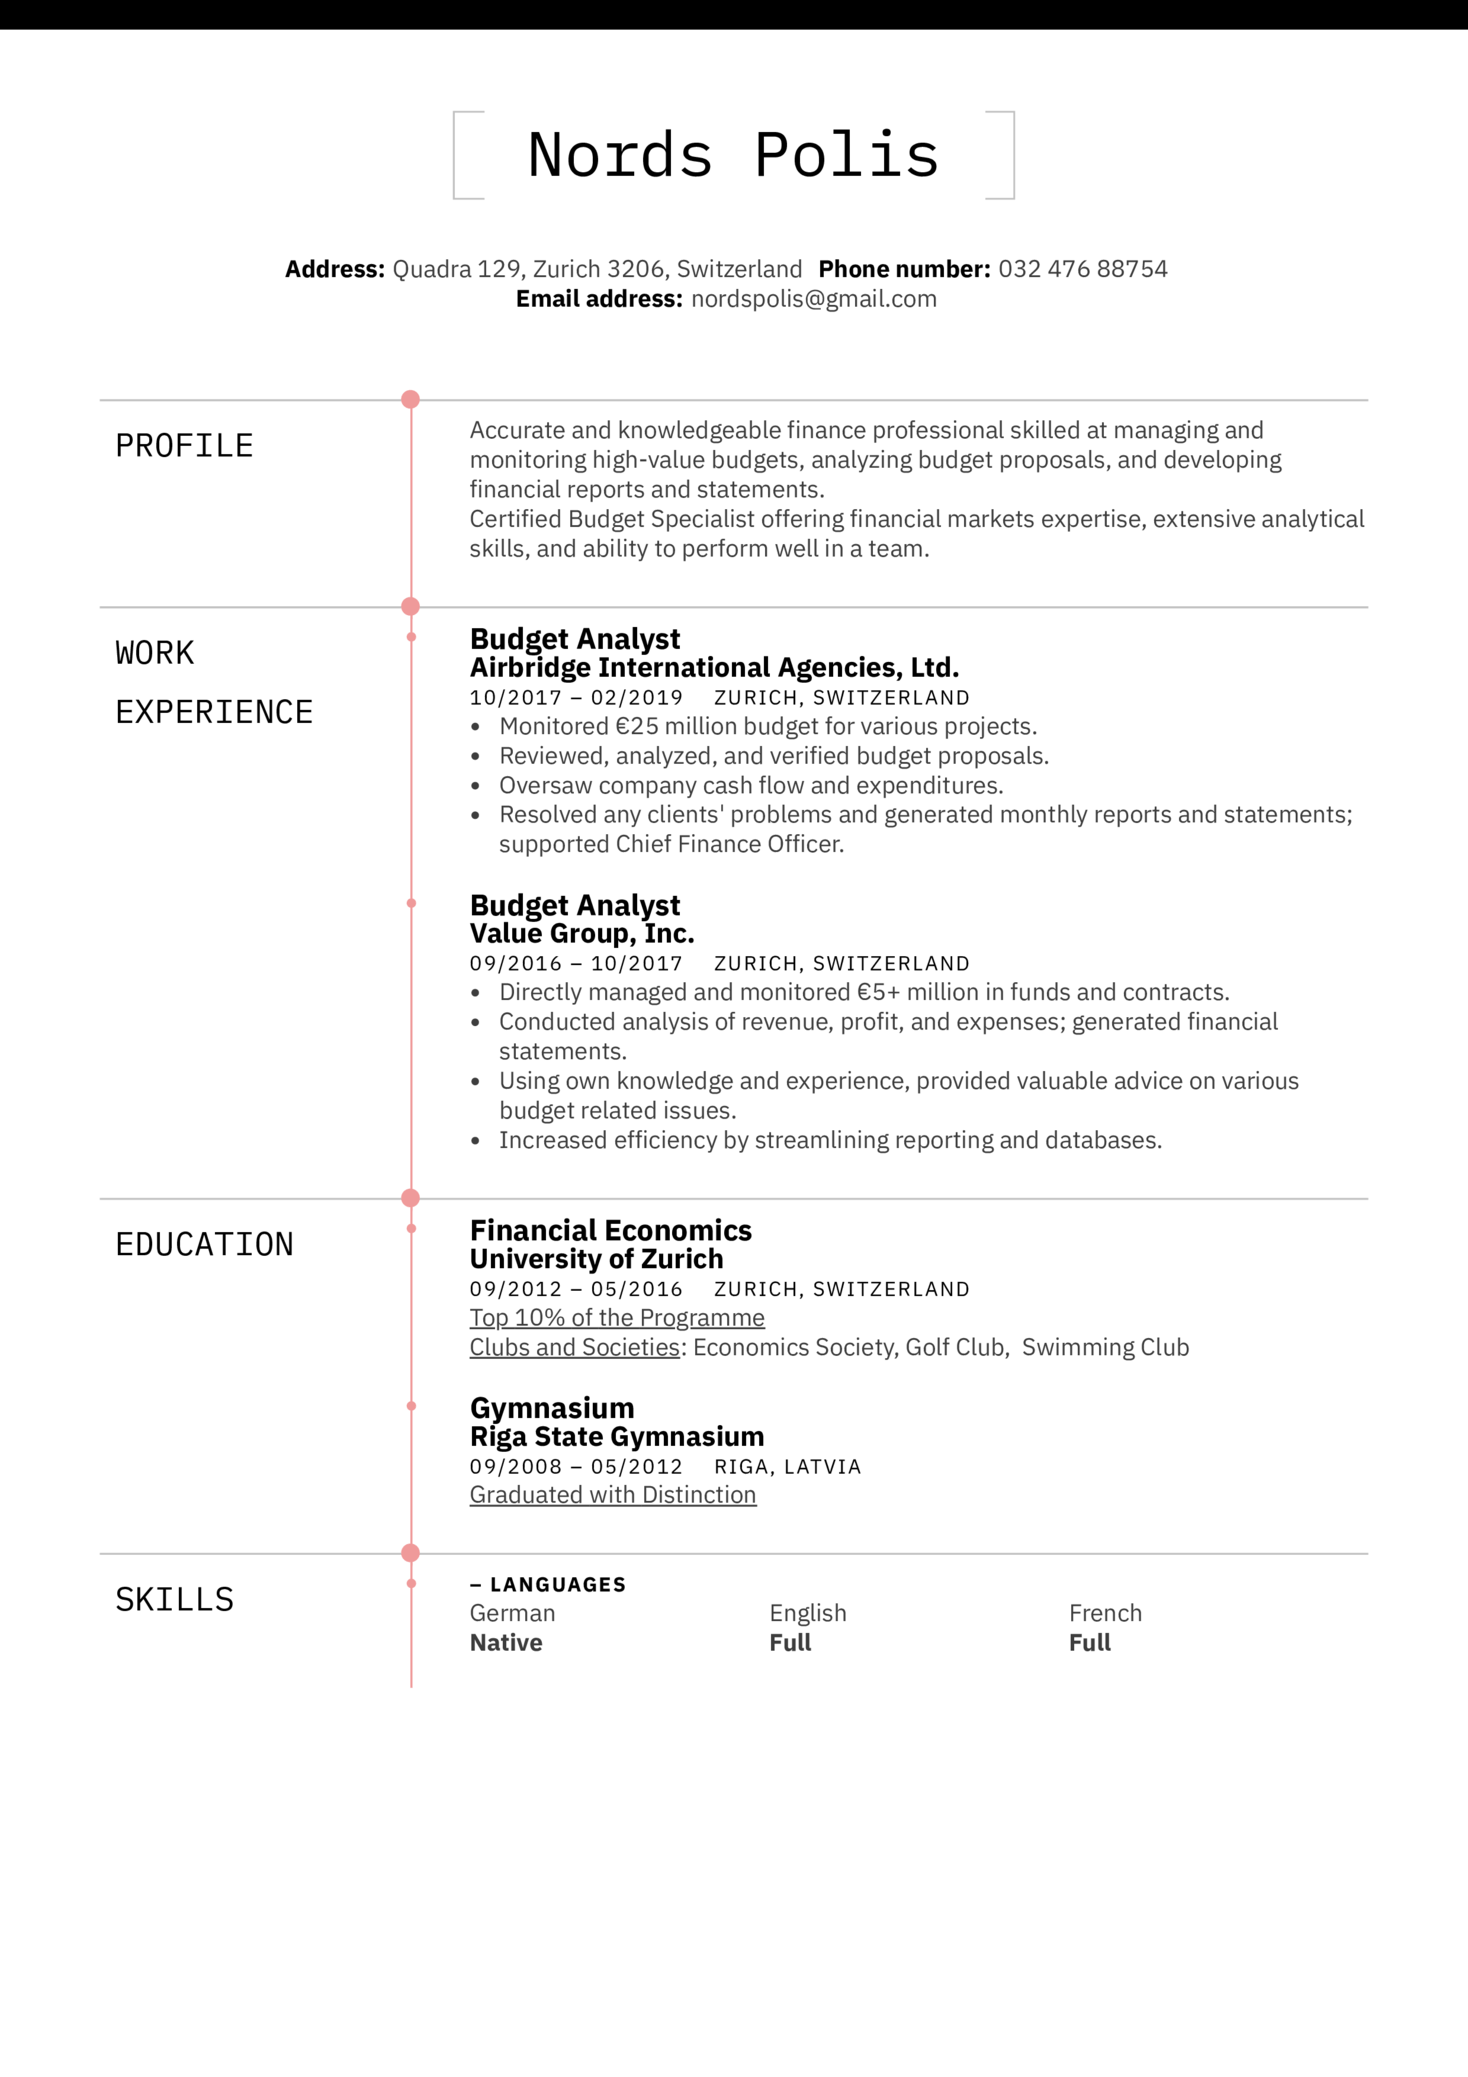 Budget Analyst Resume Example (Part 1)